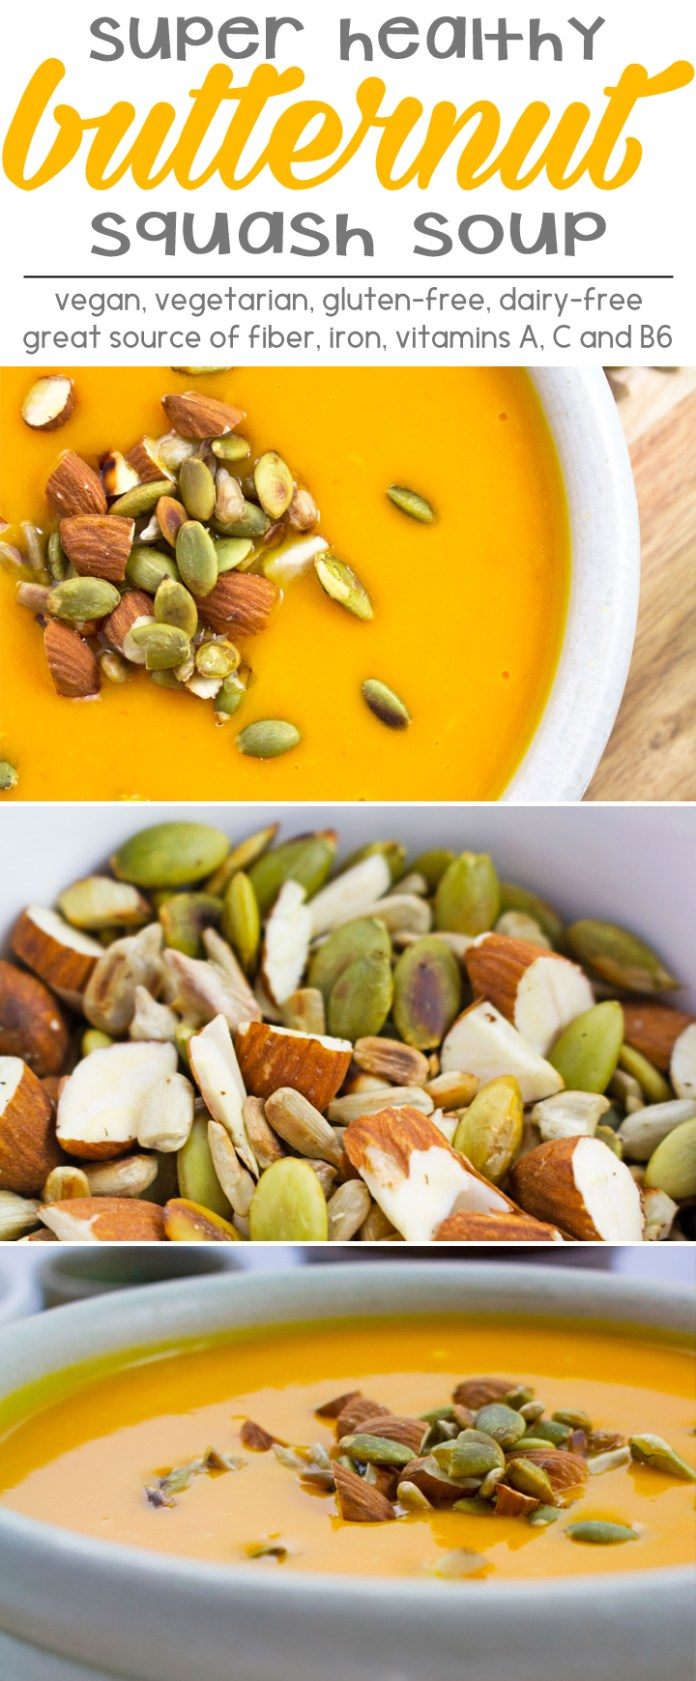 Butternut Squash Soup - Best butternut squash soup I've ever made! Loaded with vitamins and minerals, who knew it was so healthy? Vegetarian / Vegan / GF / Dairy Free.